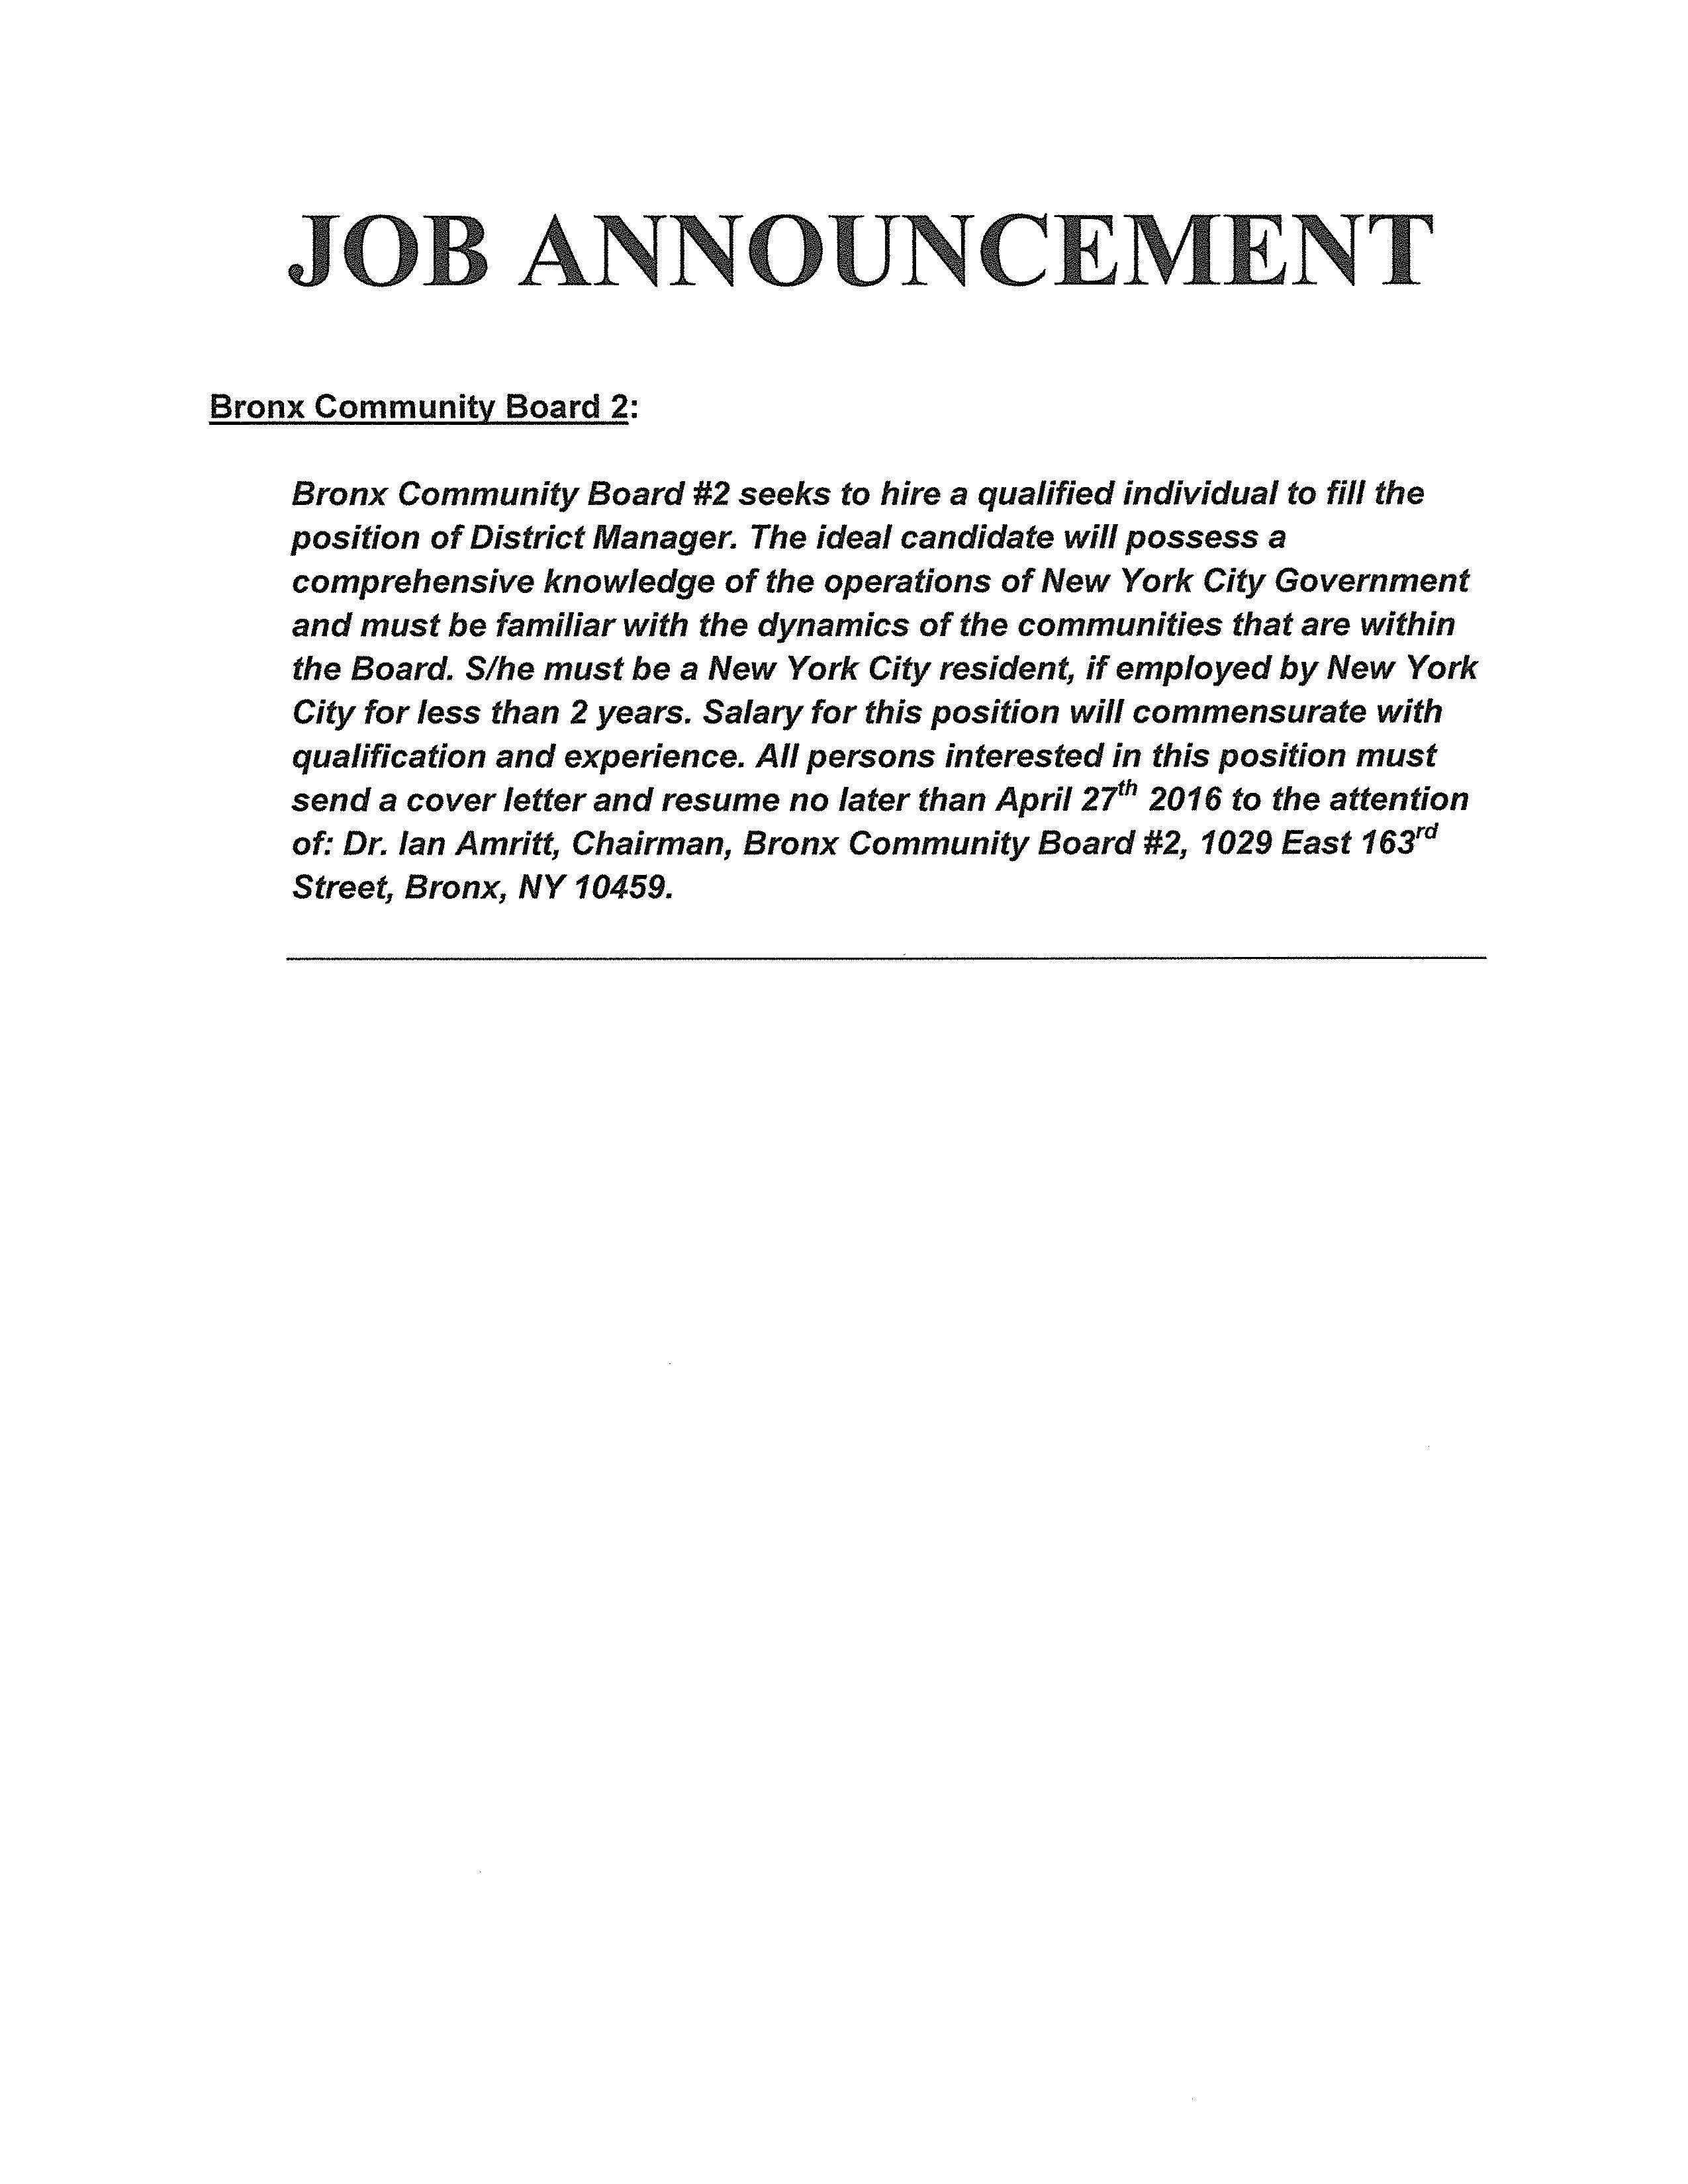 Bronx Community Board 2 District Manager Job Posting